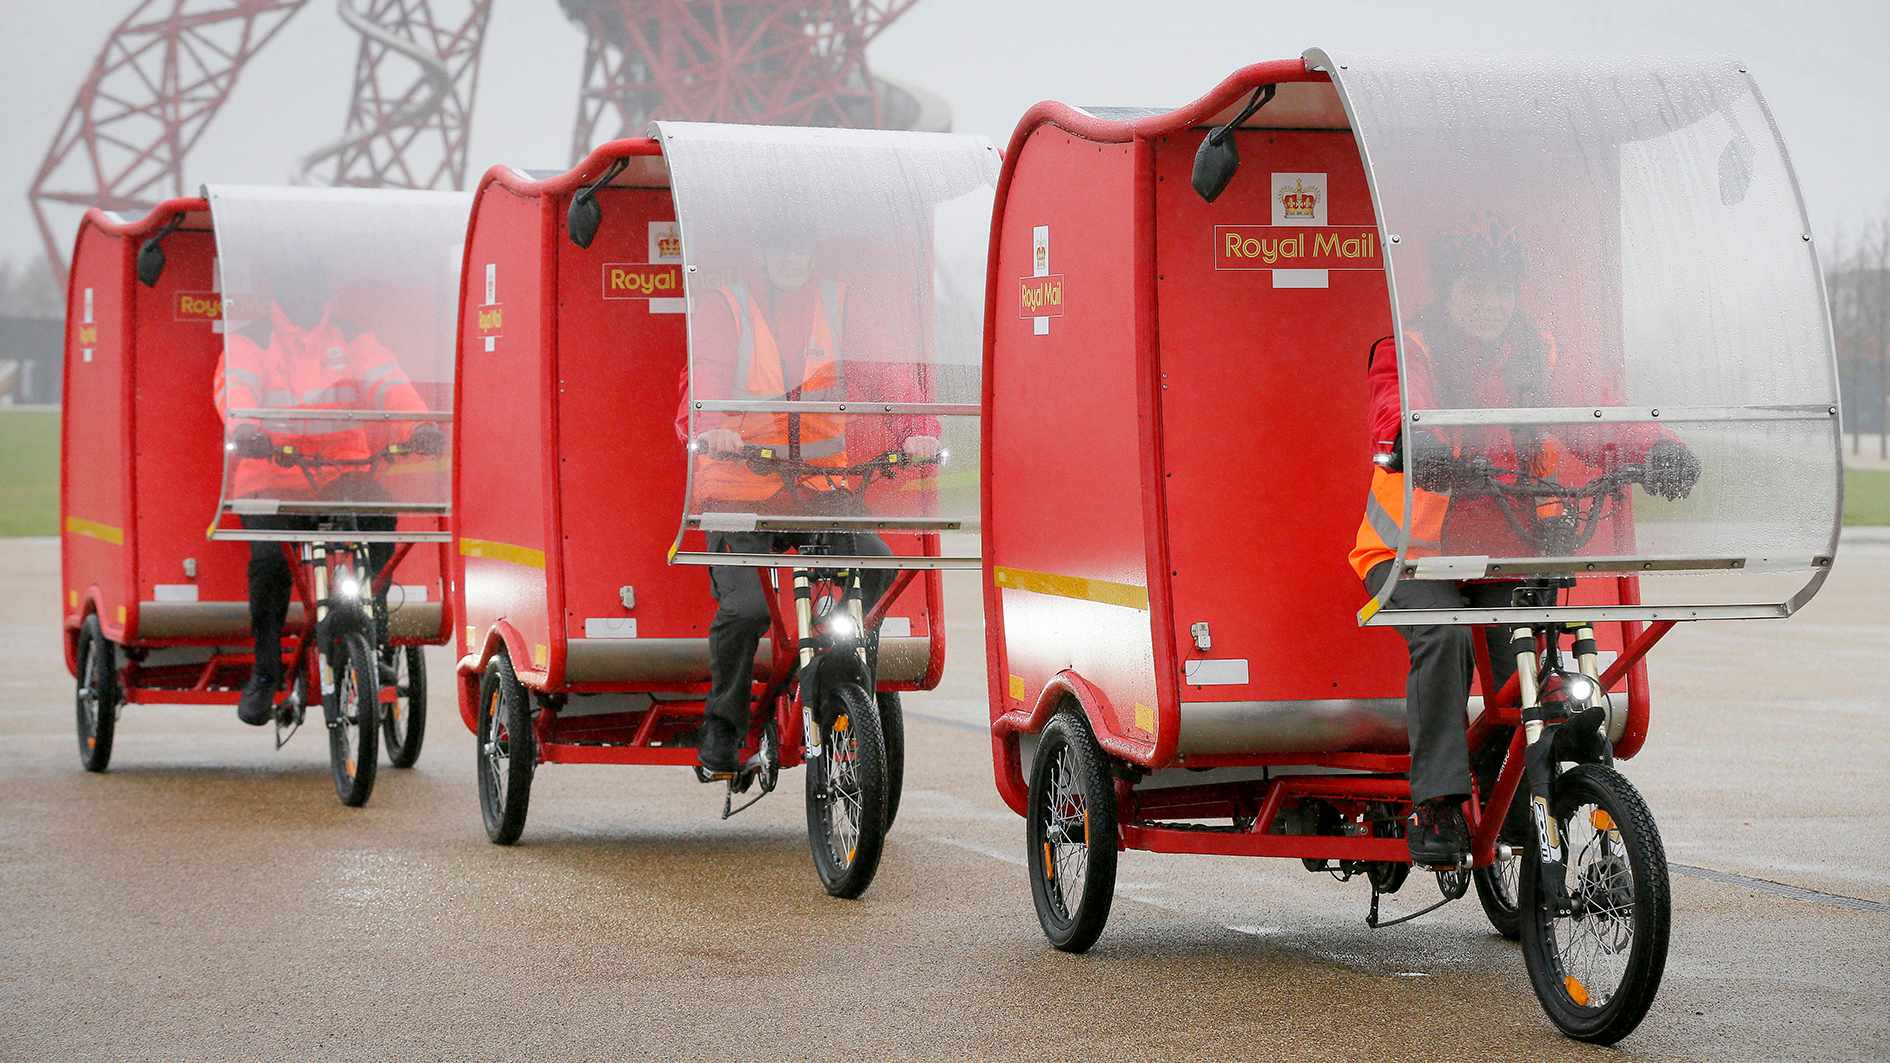 The Royal Mail will be rolling out a trial of eight e-equipped trikes across the UK